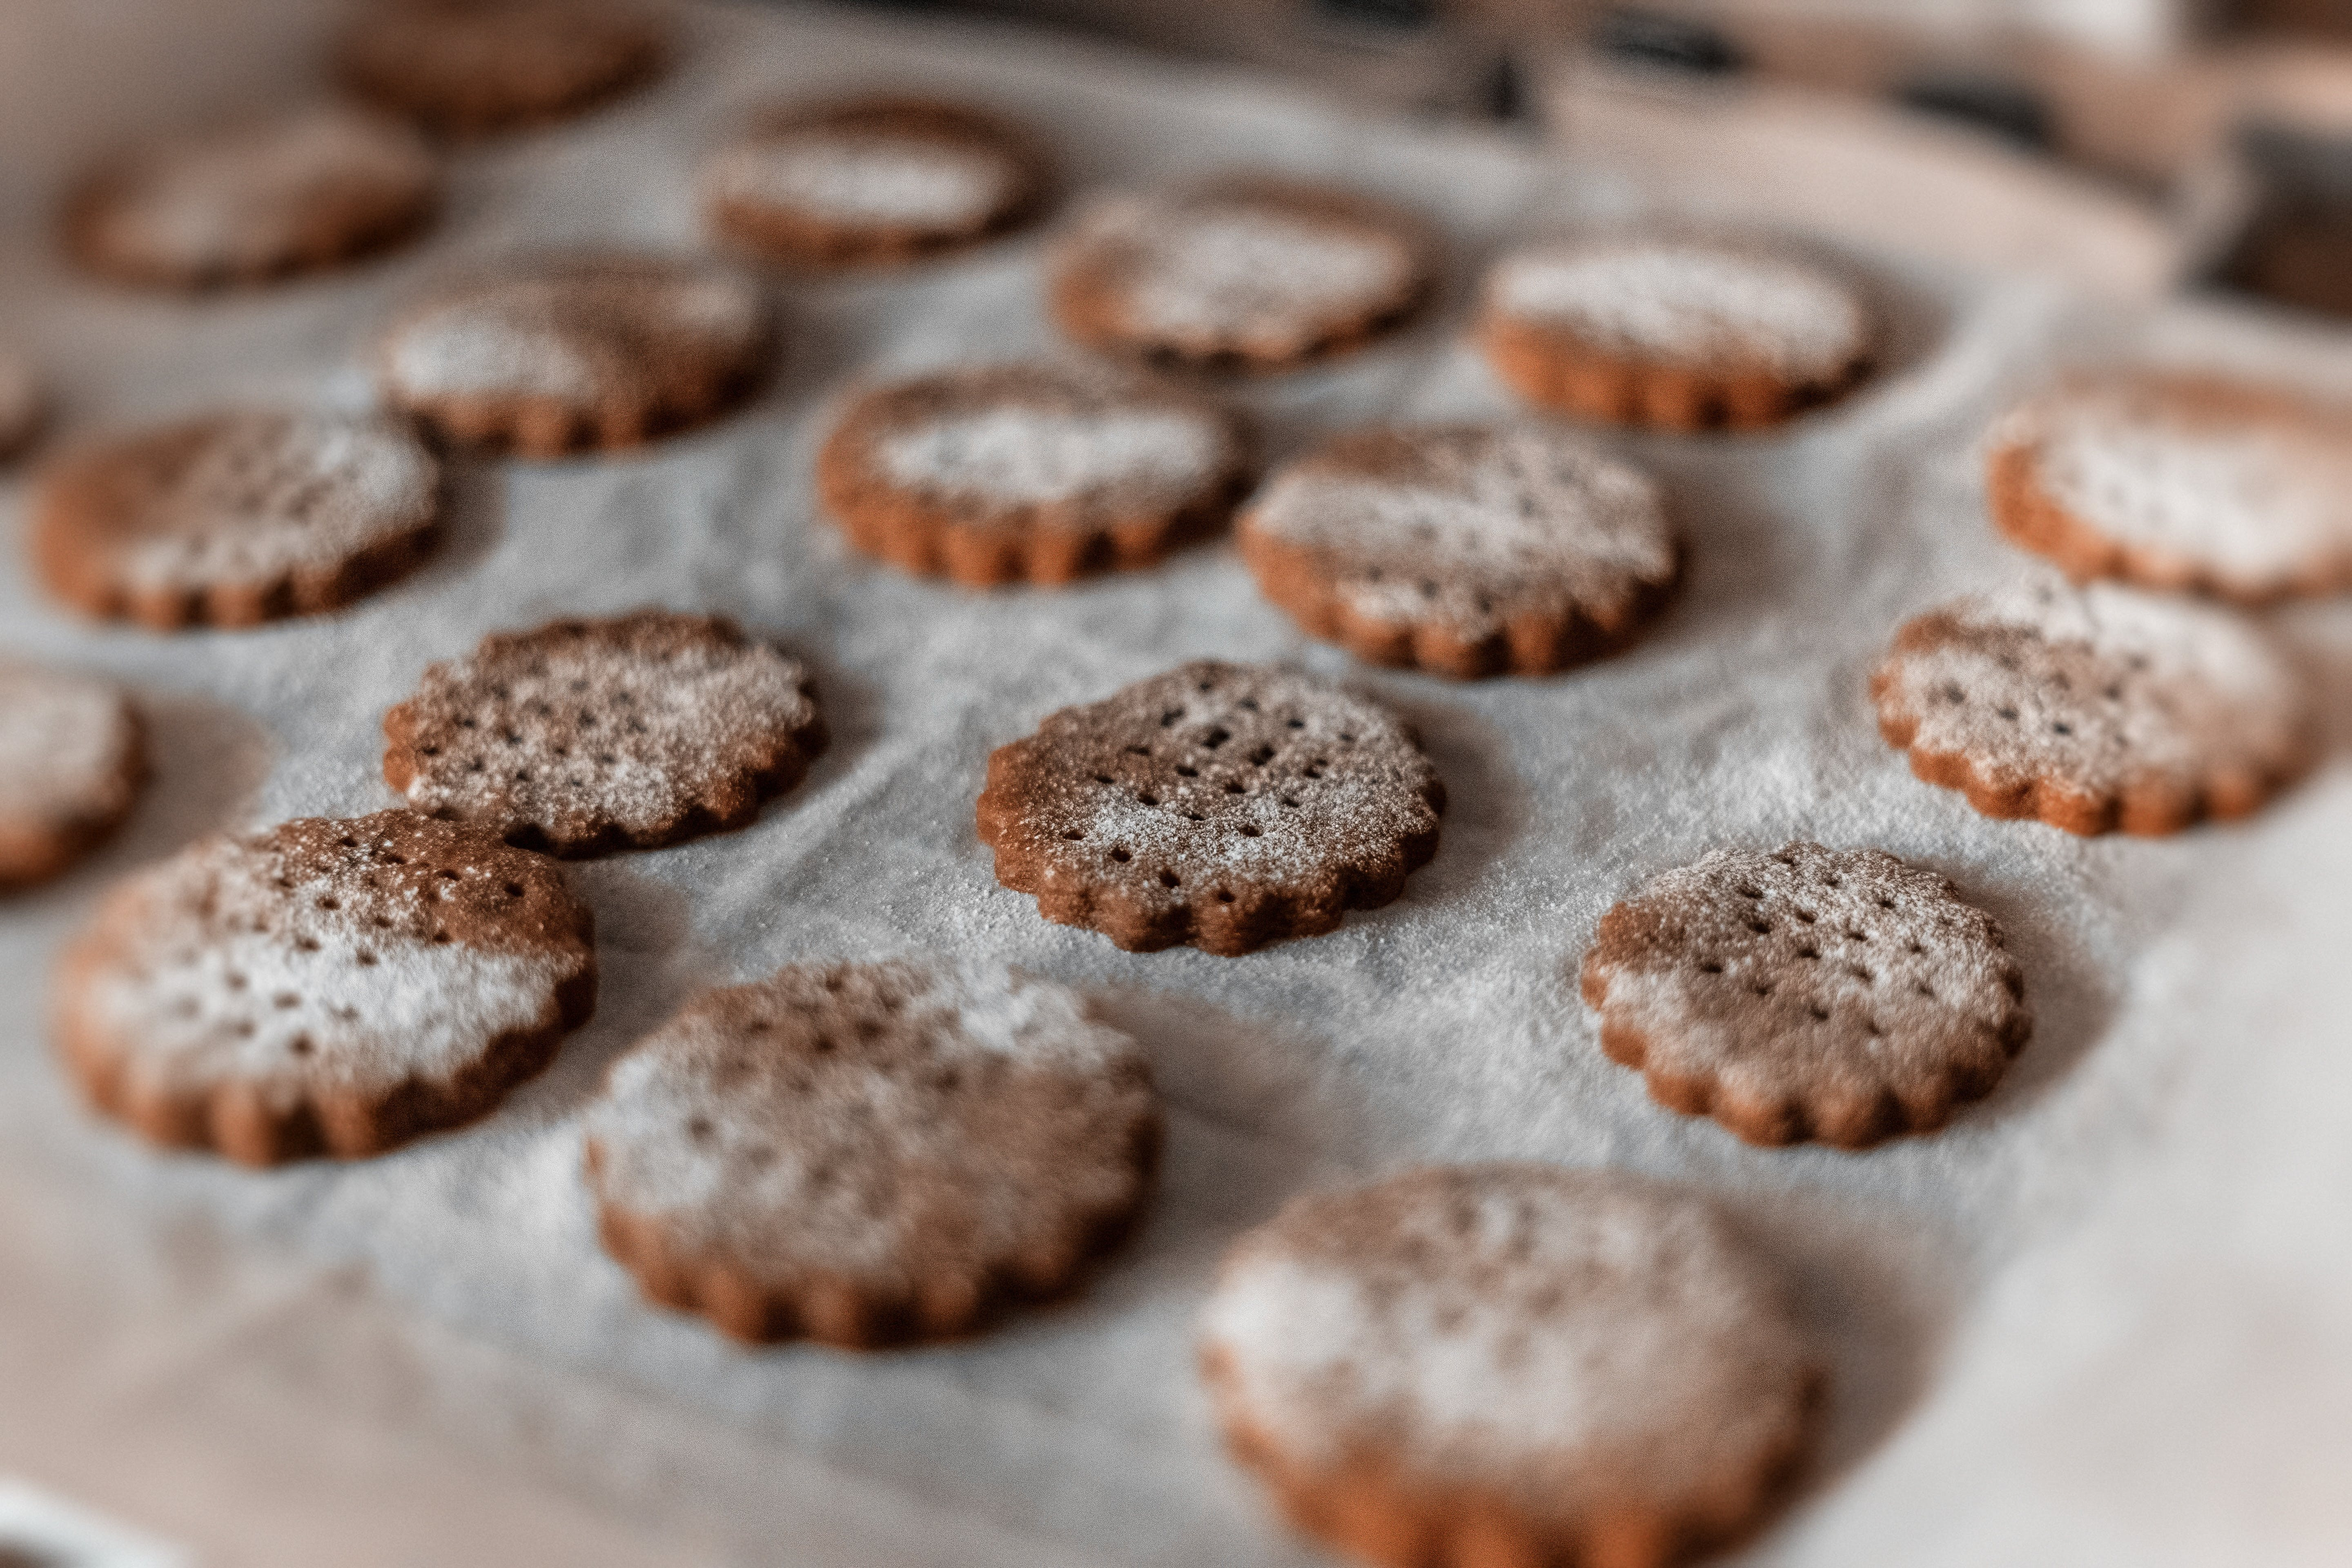 Selective Focus Photography of Cookies on Tray